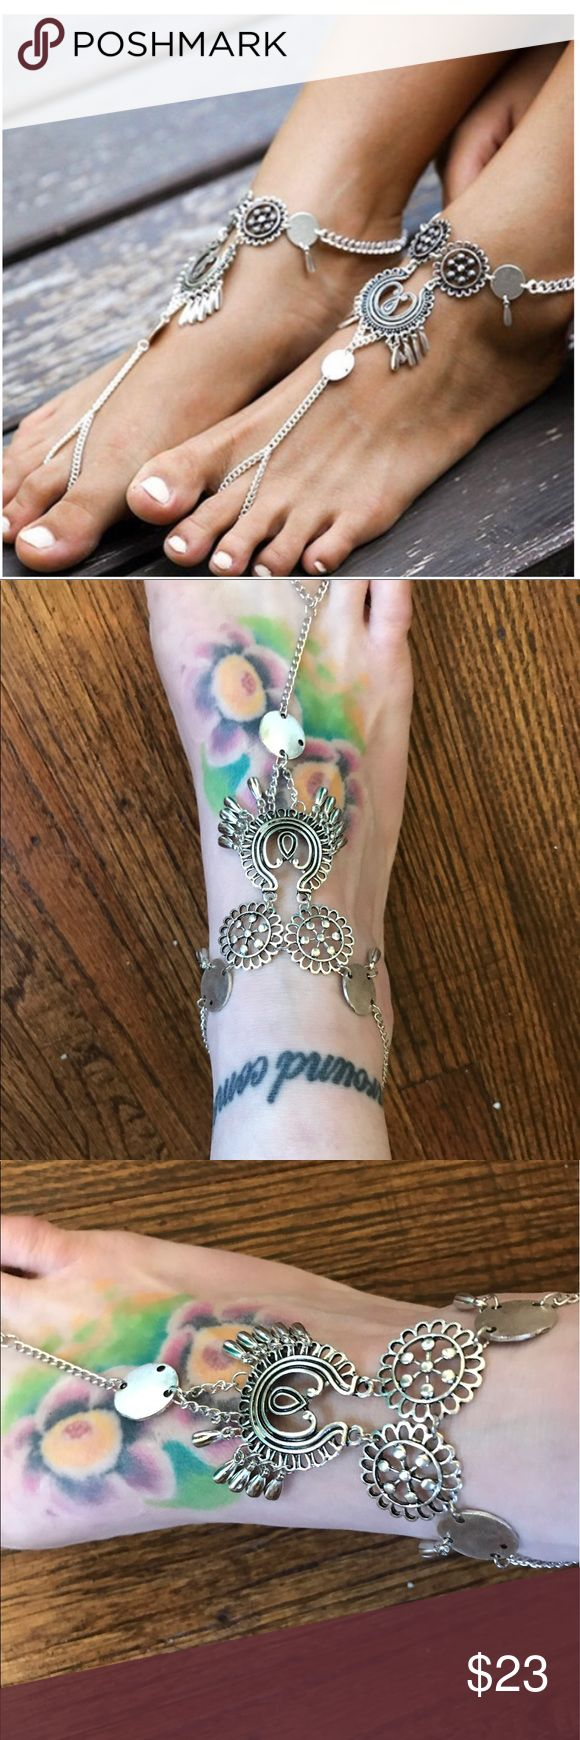 5 ⭐️ RATING A PAIR (2) DAINTY BOHO ANKLETS Get two anklets. These are fun anklets w a lot of character!  Silver tone. PRICE IS FIRM. NO OFFERS PLEASE.   SAME/NEXT DAY SHIPPING   SMOKE FREE   PET FRIENDLY  BOUTIQUE ITEMS MAY NOT HAVE TAGS  NO TRADES  NO MODELING  REALISTIC OFFERS WELCOME Jewelry Bracelets